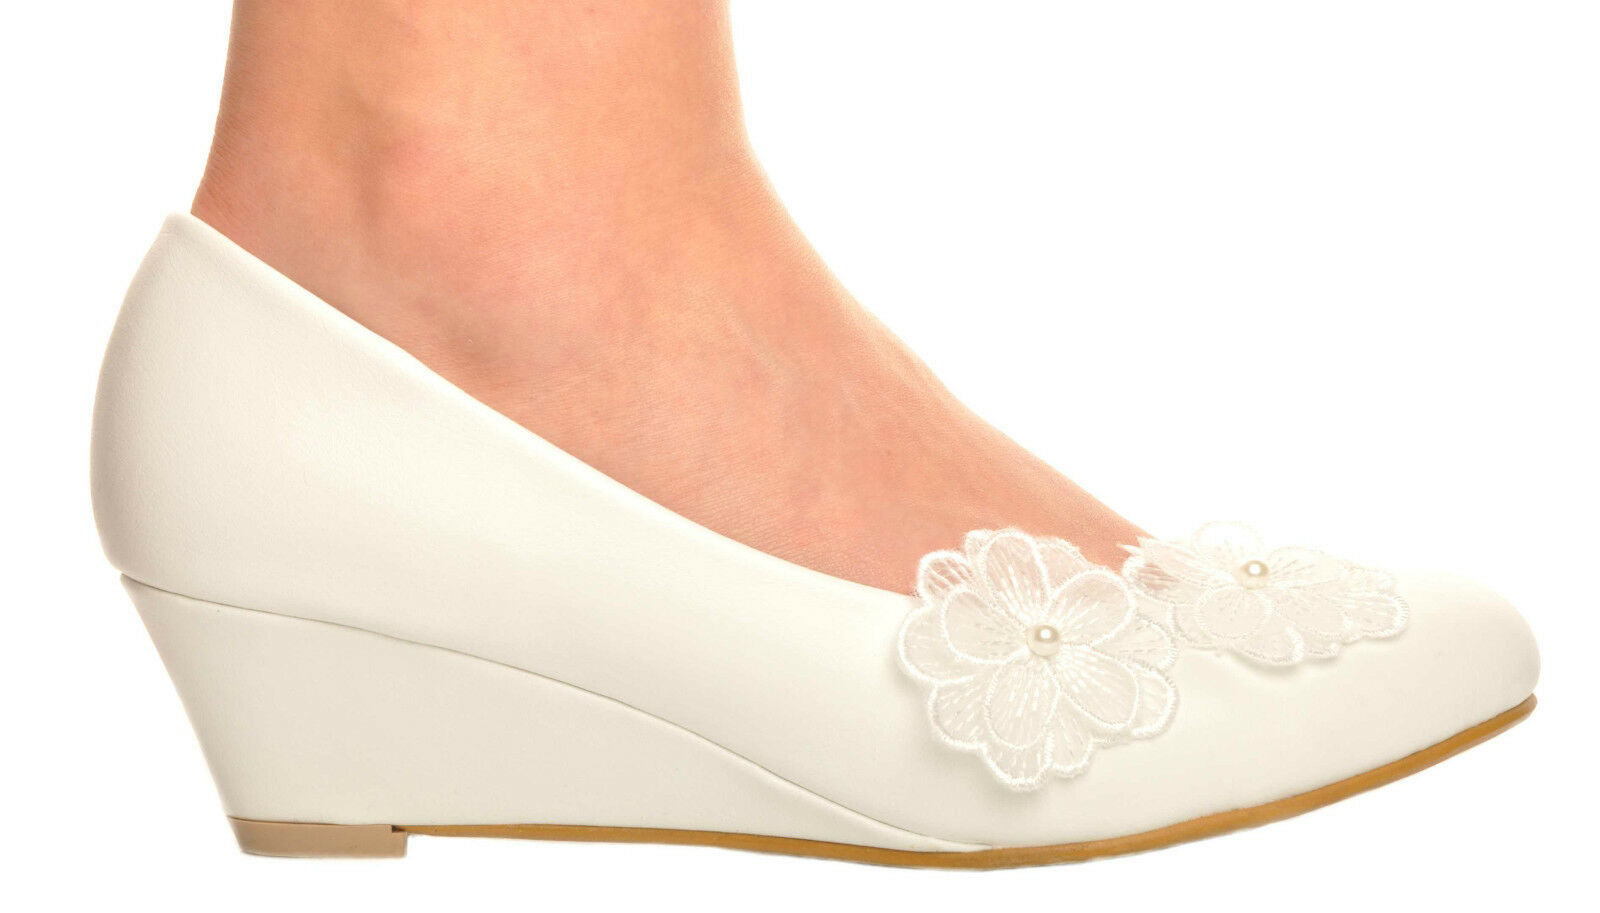 Off White Lace Flowers Pearl Wedge Heels Wedding Pumps Bridal shoes